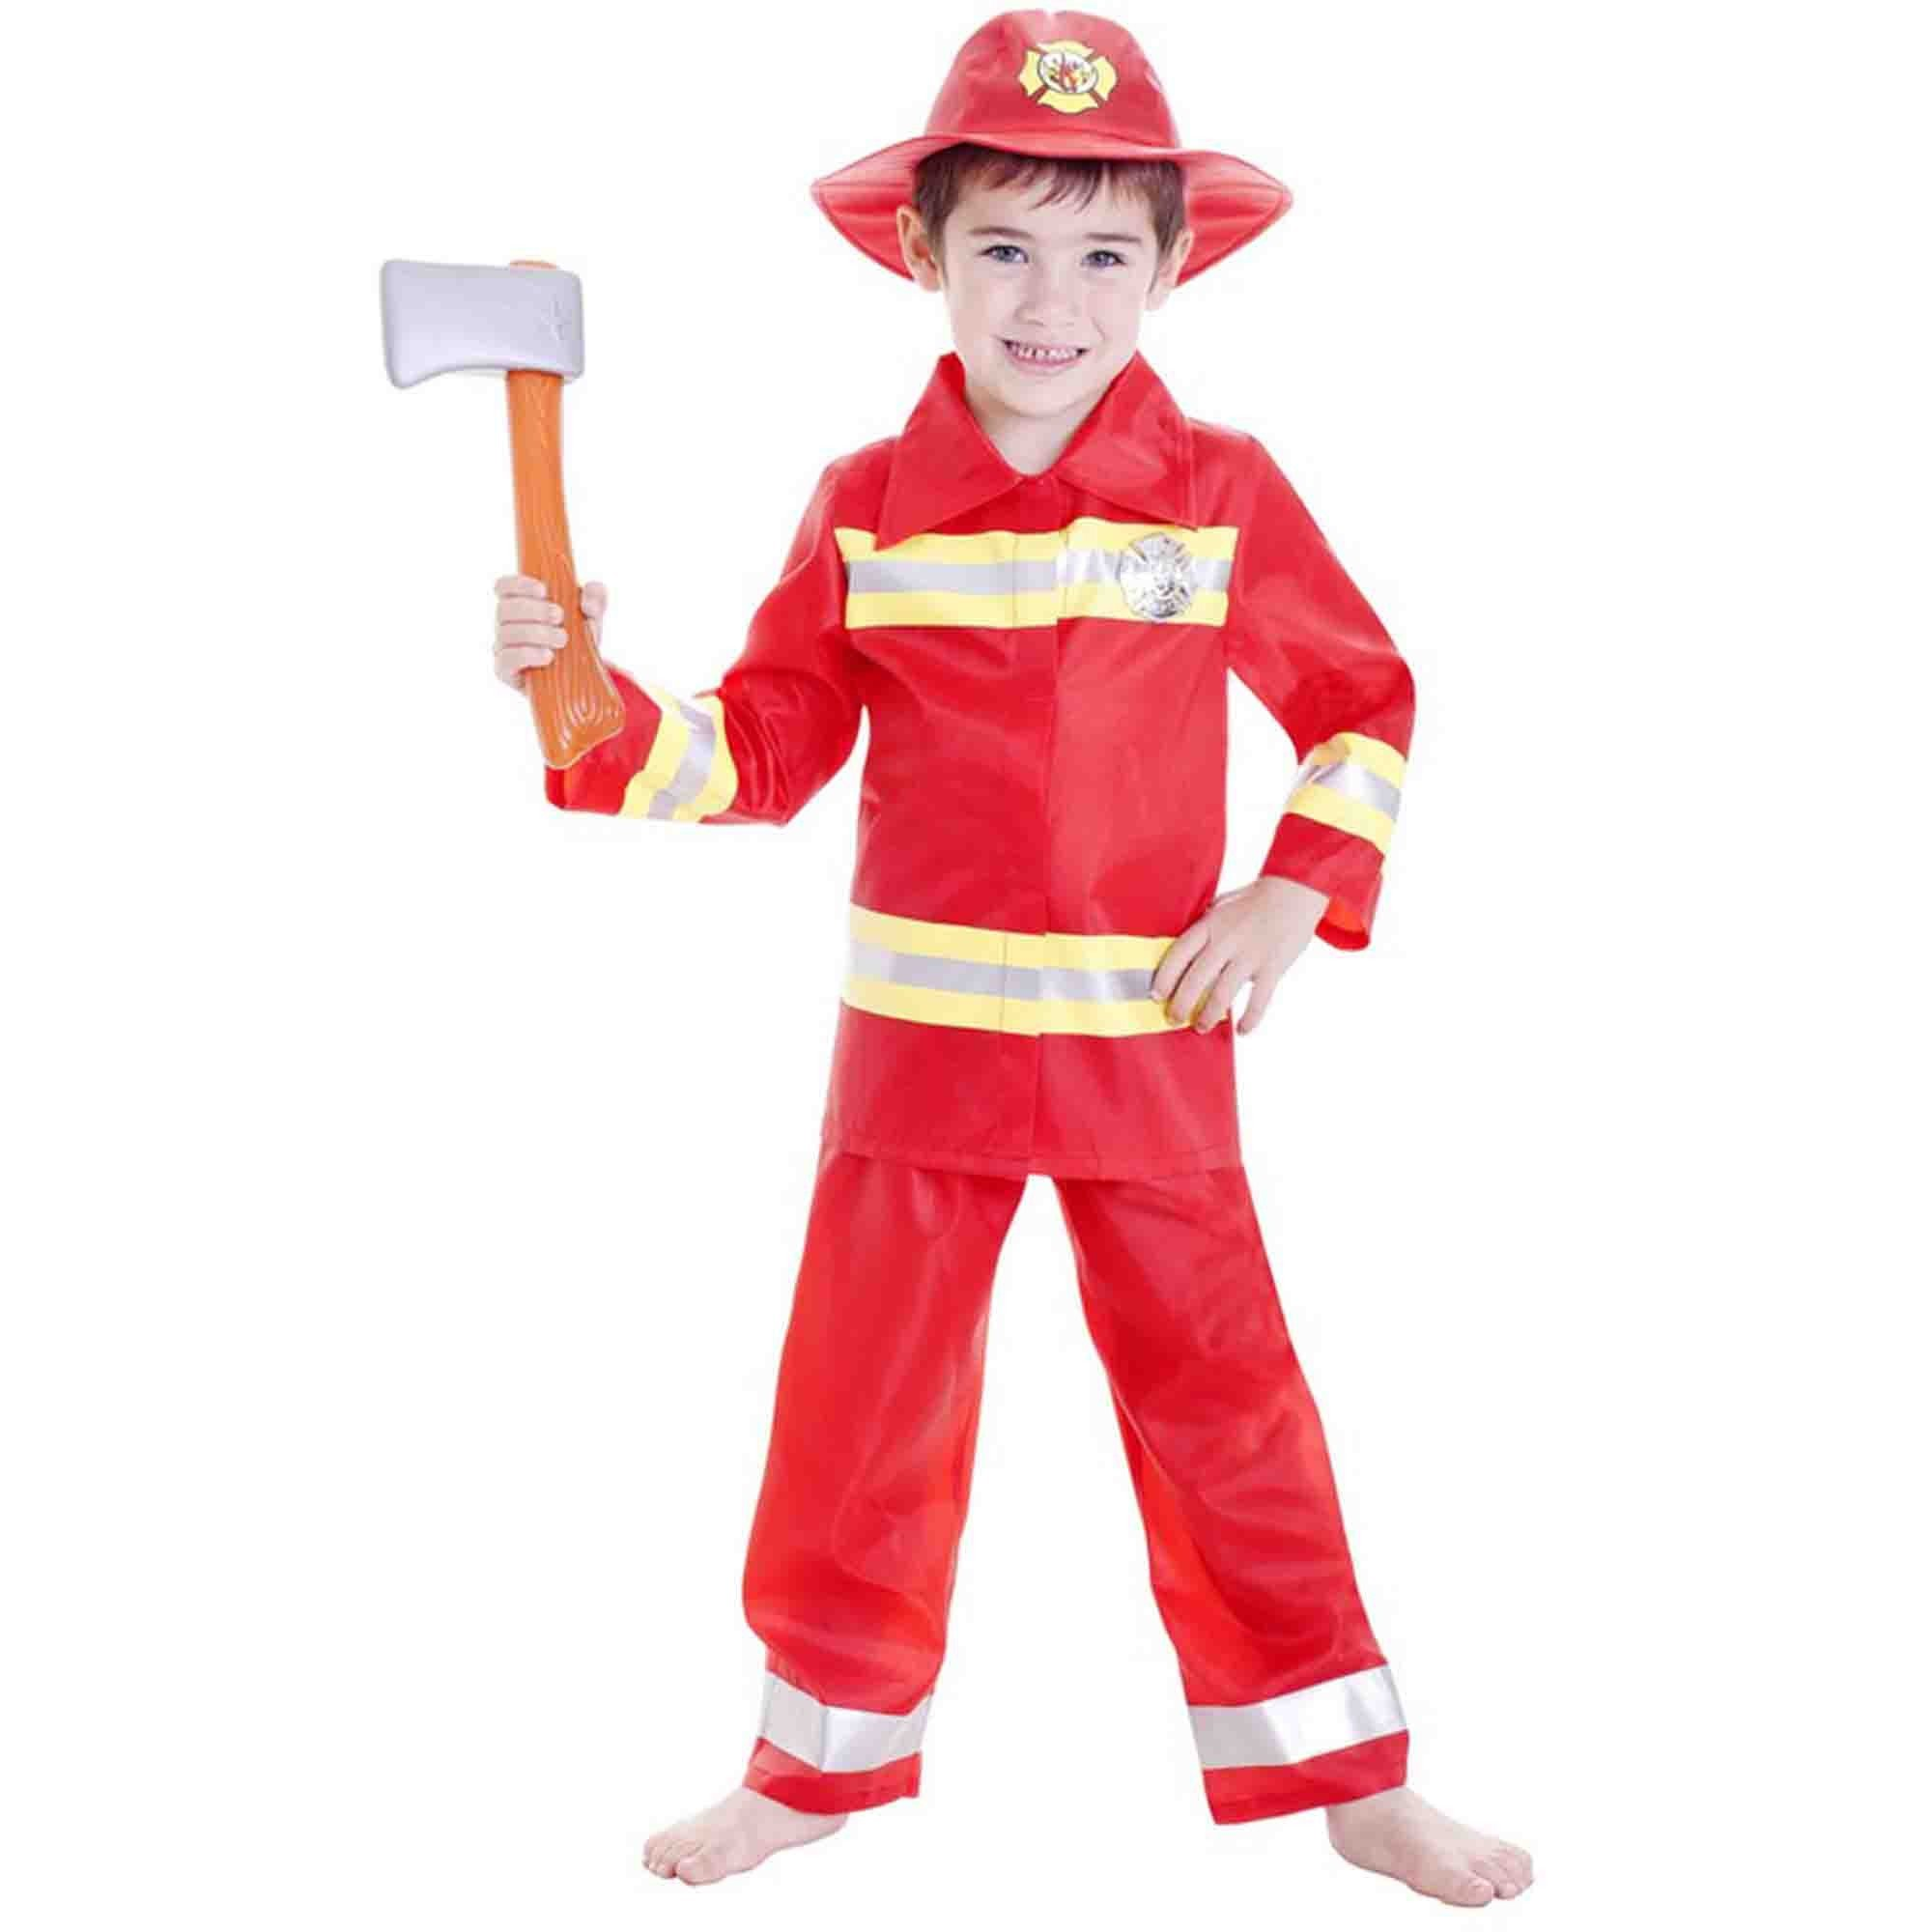 Deluxe Fireman Boy Costume (Large) 6-8 yrs